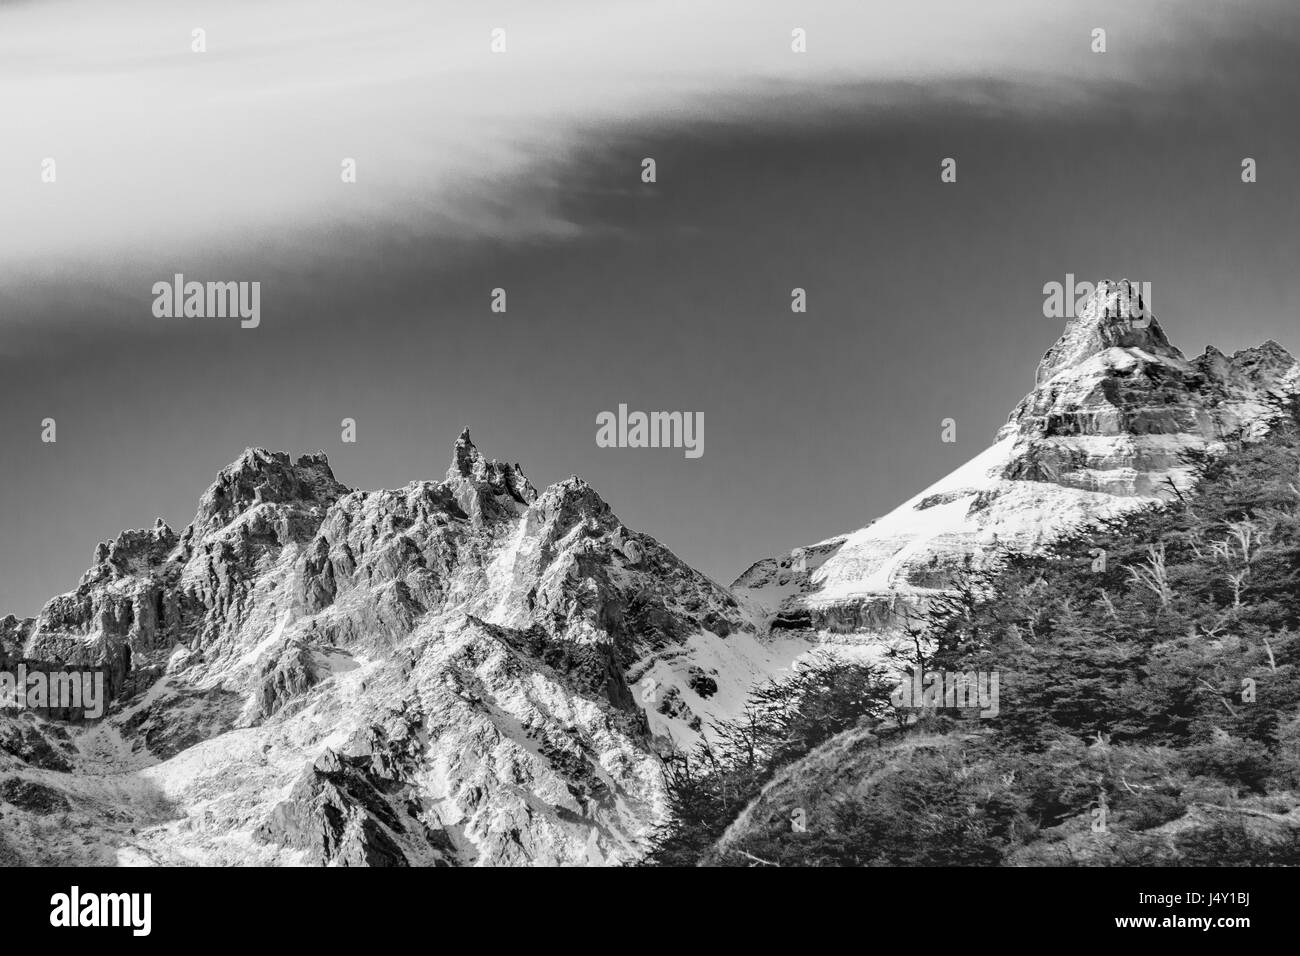 Patagonia landscape scene with big snowy andes mountains as main subject, Parque Nacional Los Glaciares, Argentina - Stock Image